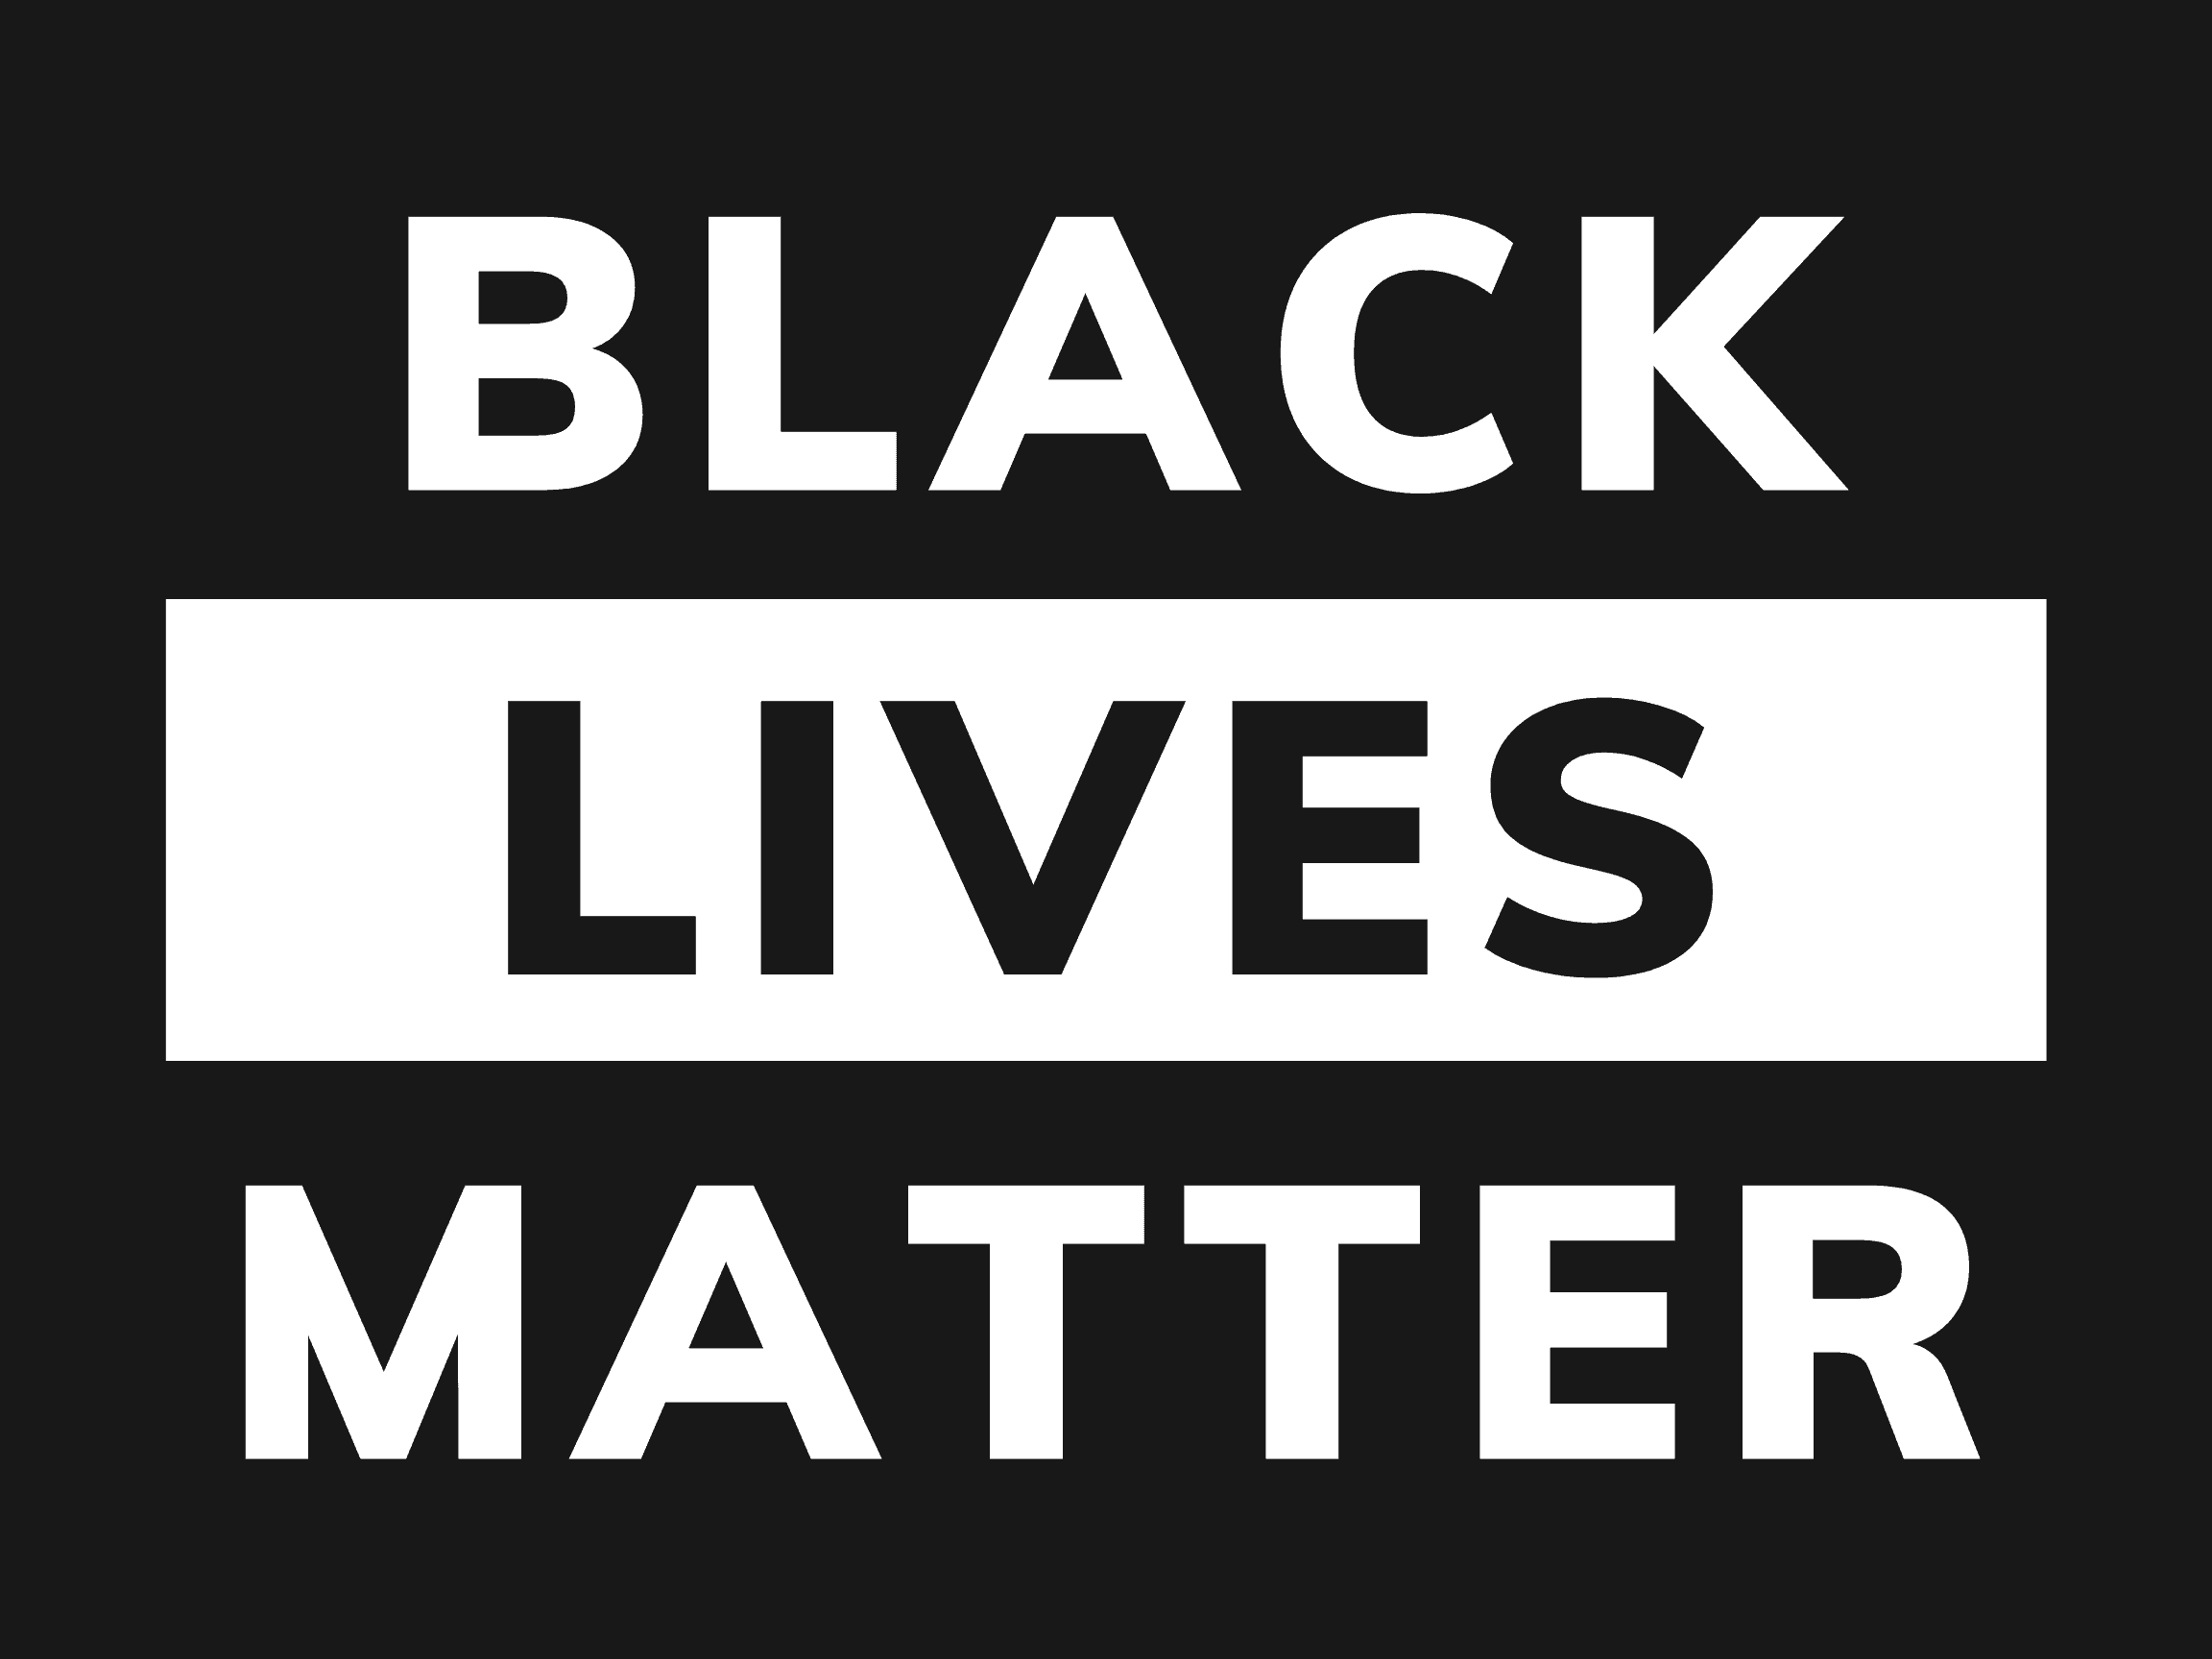 BLACK LIVES MATTER yard sign